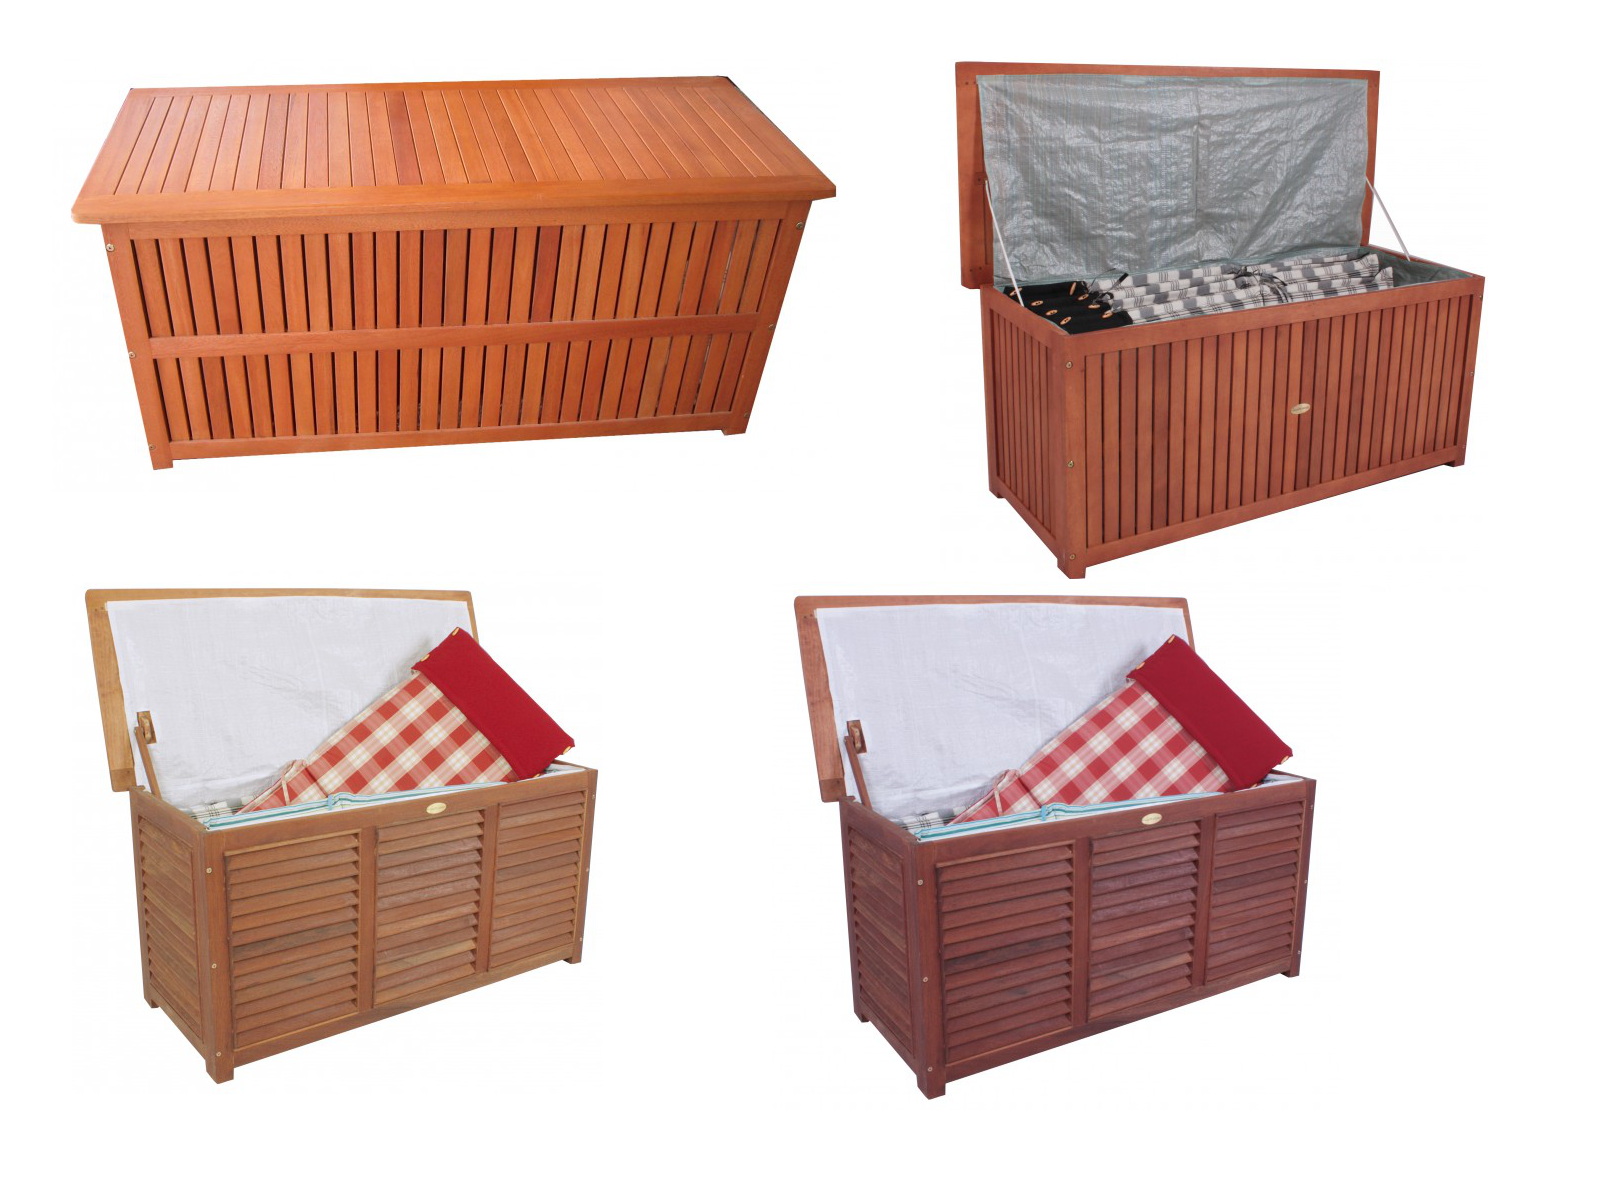 auflagenbox gartenbox kissenbox box gartentruhe garten truhe aus hartholz holz ebay. Black Bedroom Furniture Sets. Home Design Ideas